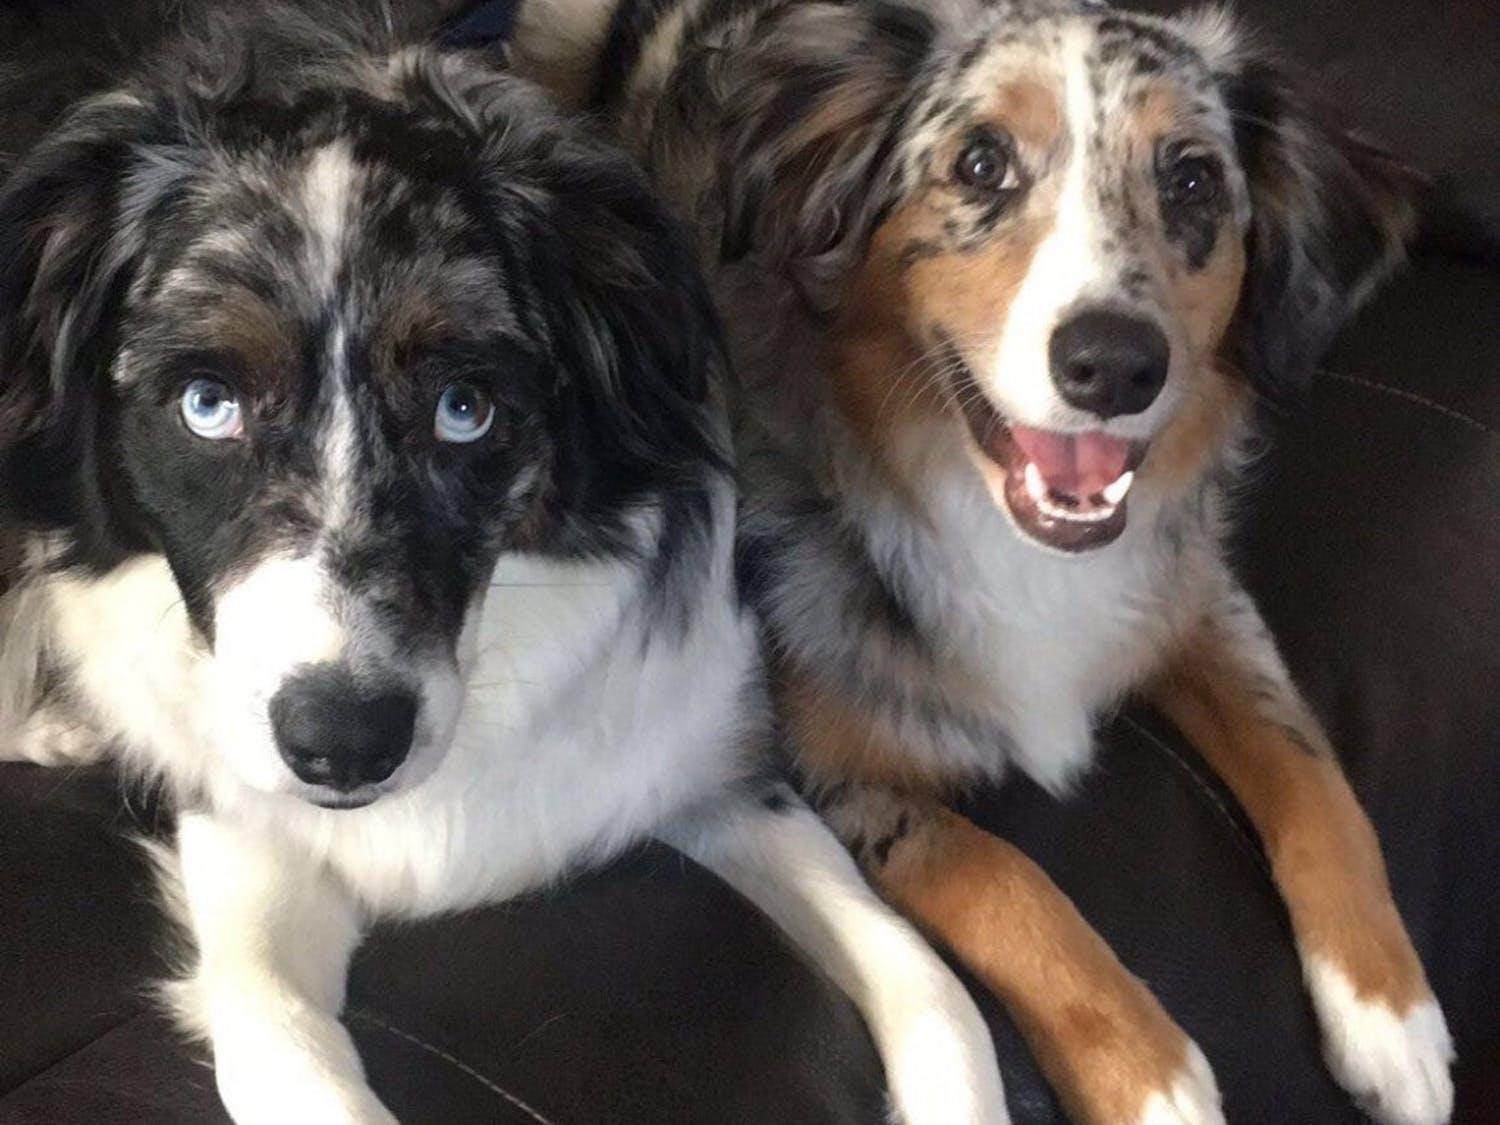 Loki (left) and Willow (right) are best friends who love going on walks.